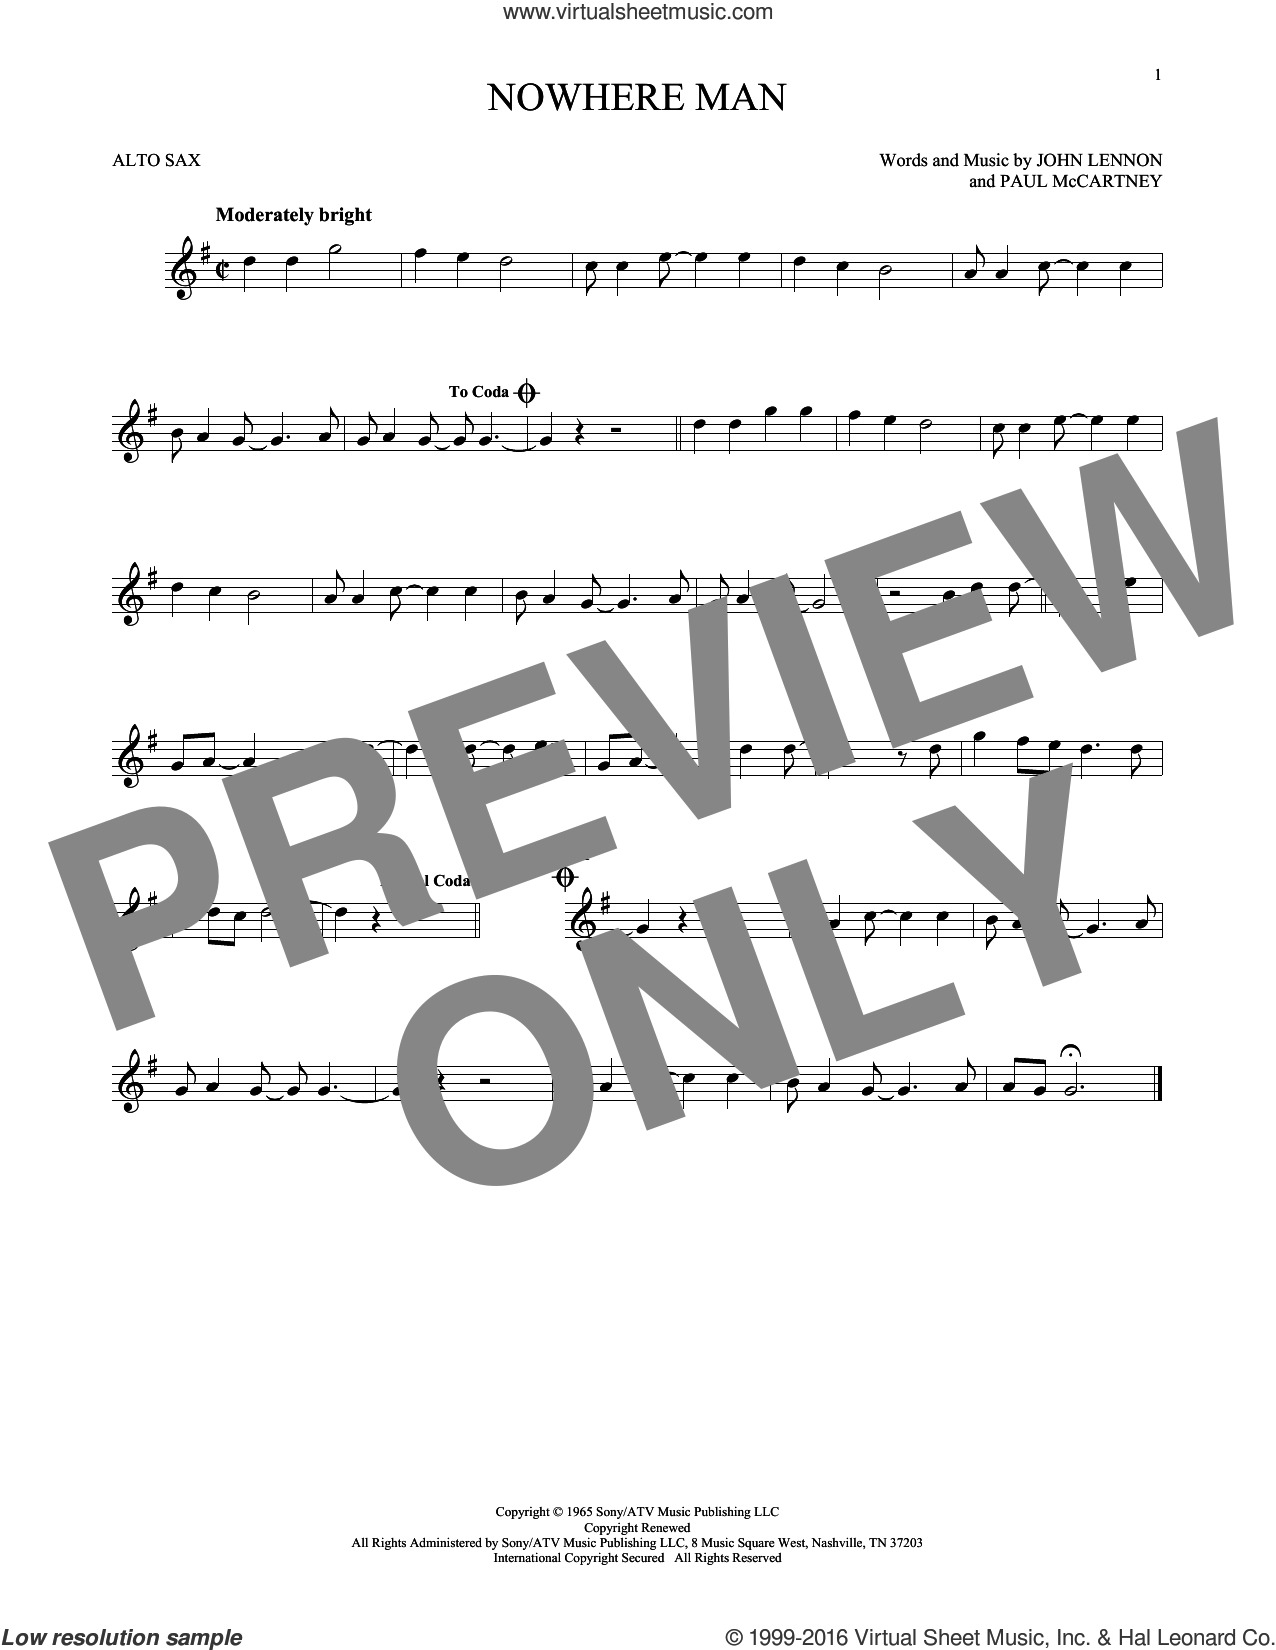 Nowhere Man sheet music for alto saxophone solo by The Beatles, John Lennon and Paul McCartney, intermediate skill level